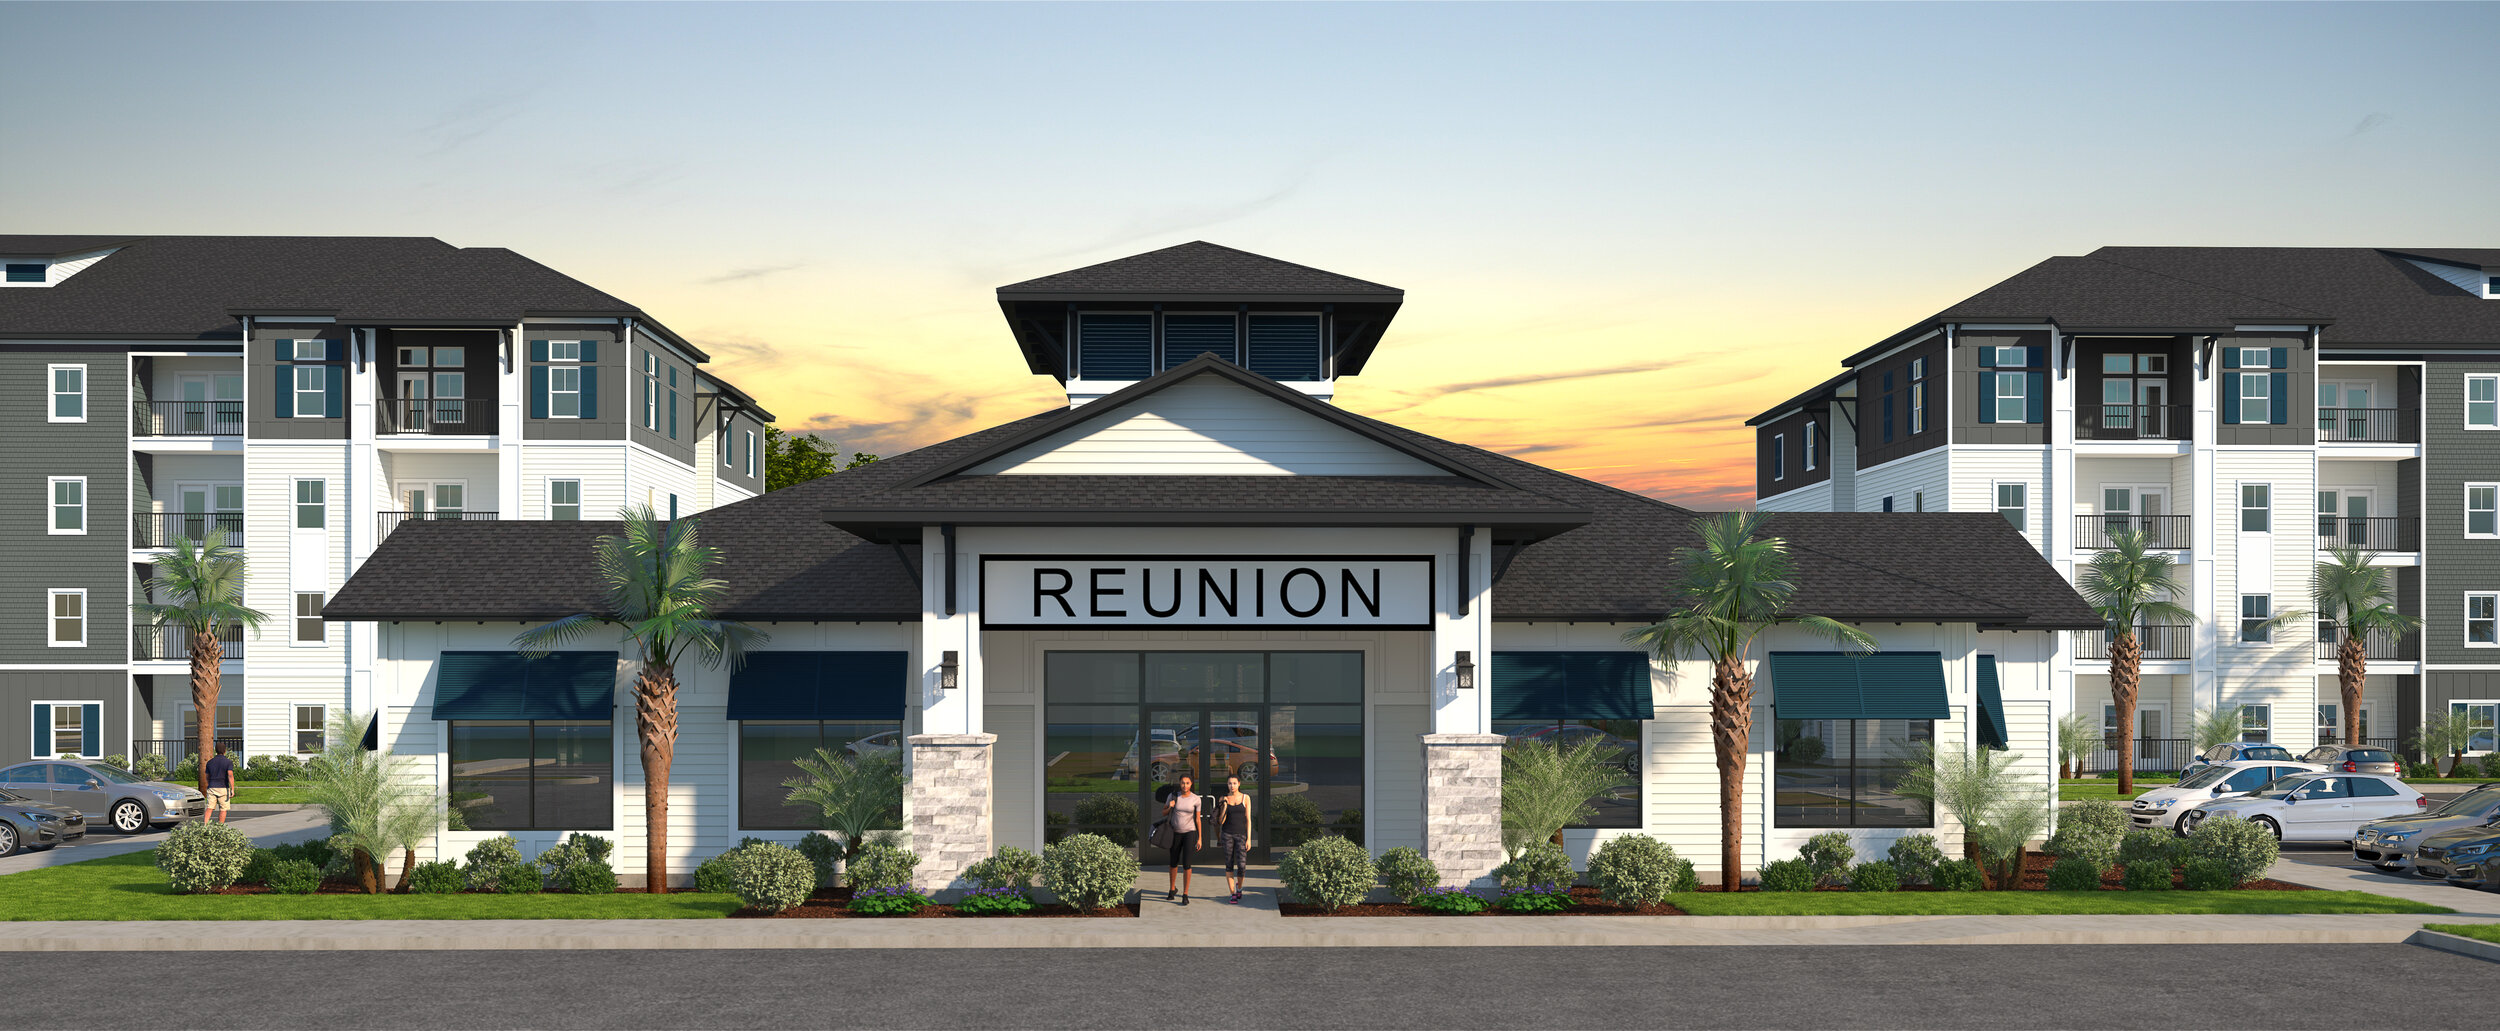 Reunion Apartments